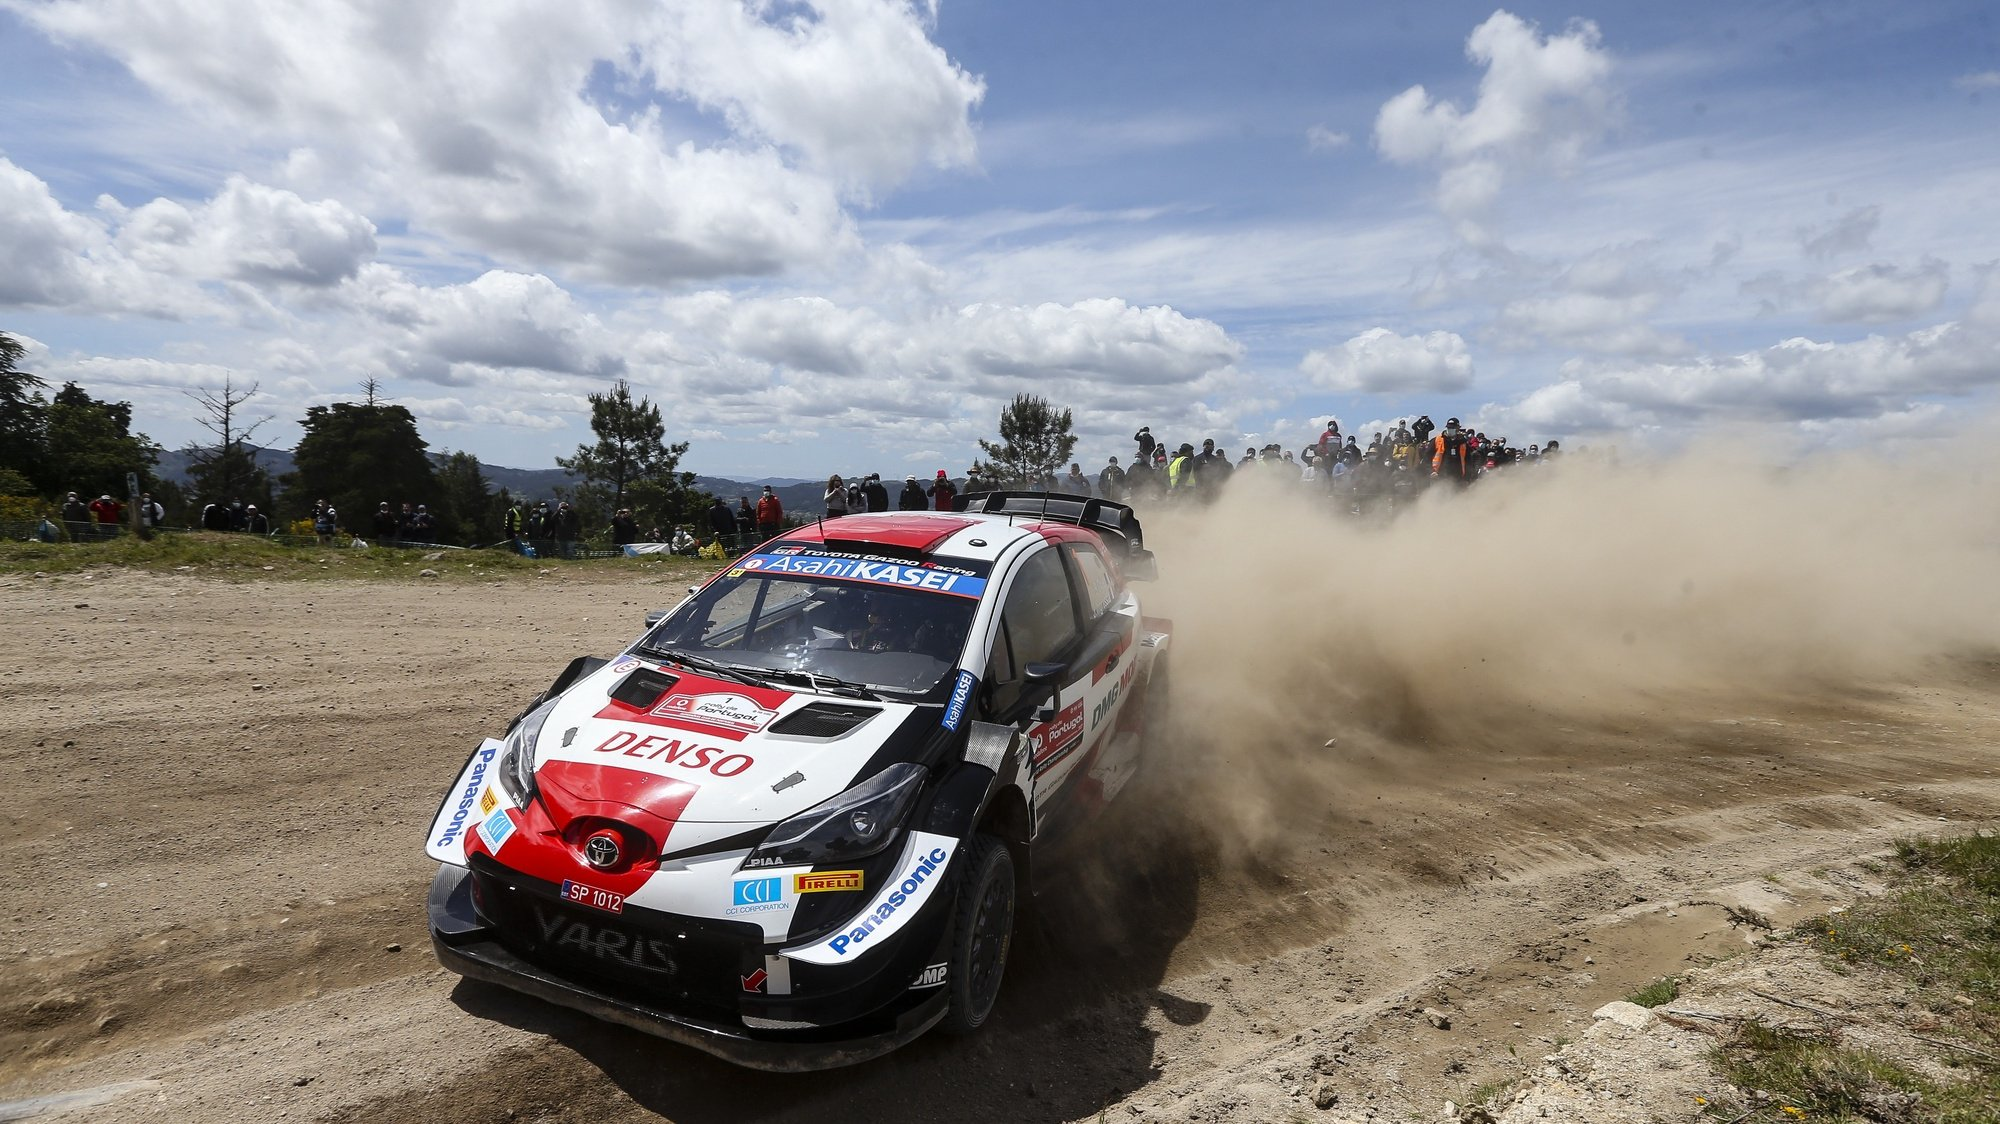 Sebastien Ogier from France drives his Toyota Yaris WRC during the second day of the Rally Portugal as part of the World Rally Championship (WRC), in Vieira do Minho, Portugal, 22 May 2021. JOSE COELHO/LUSA